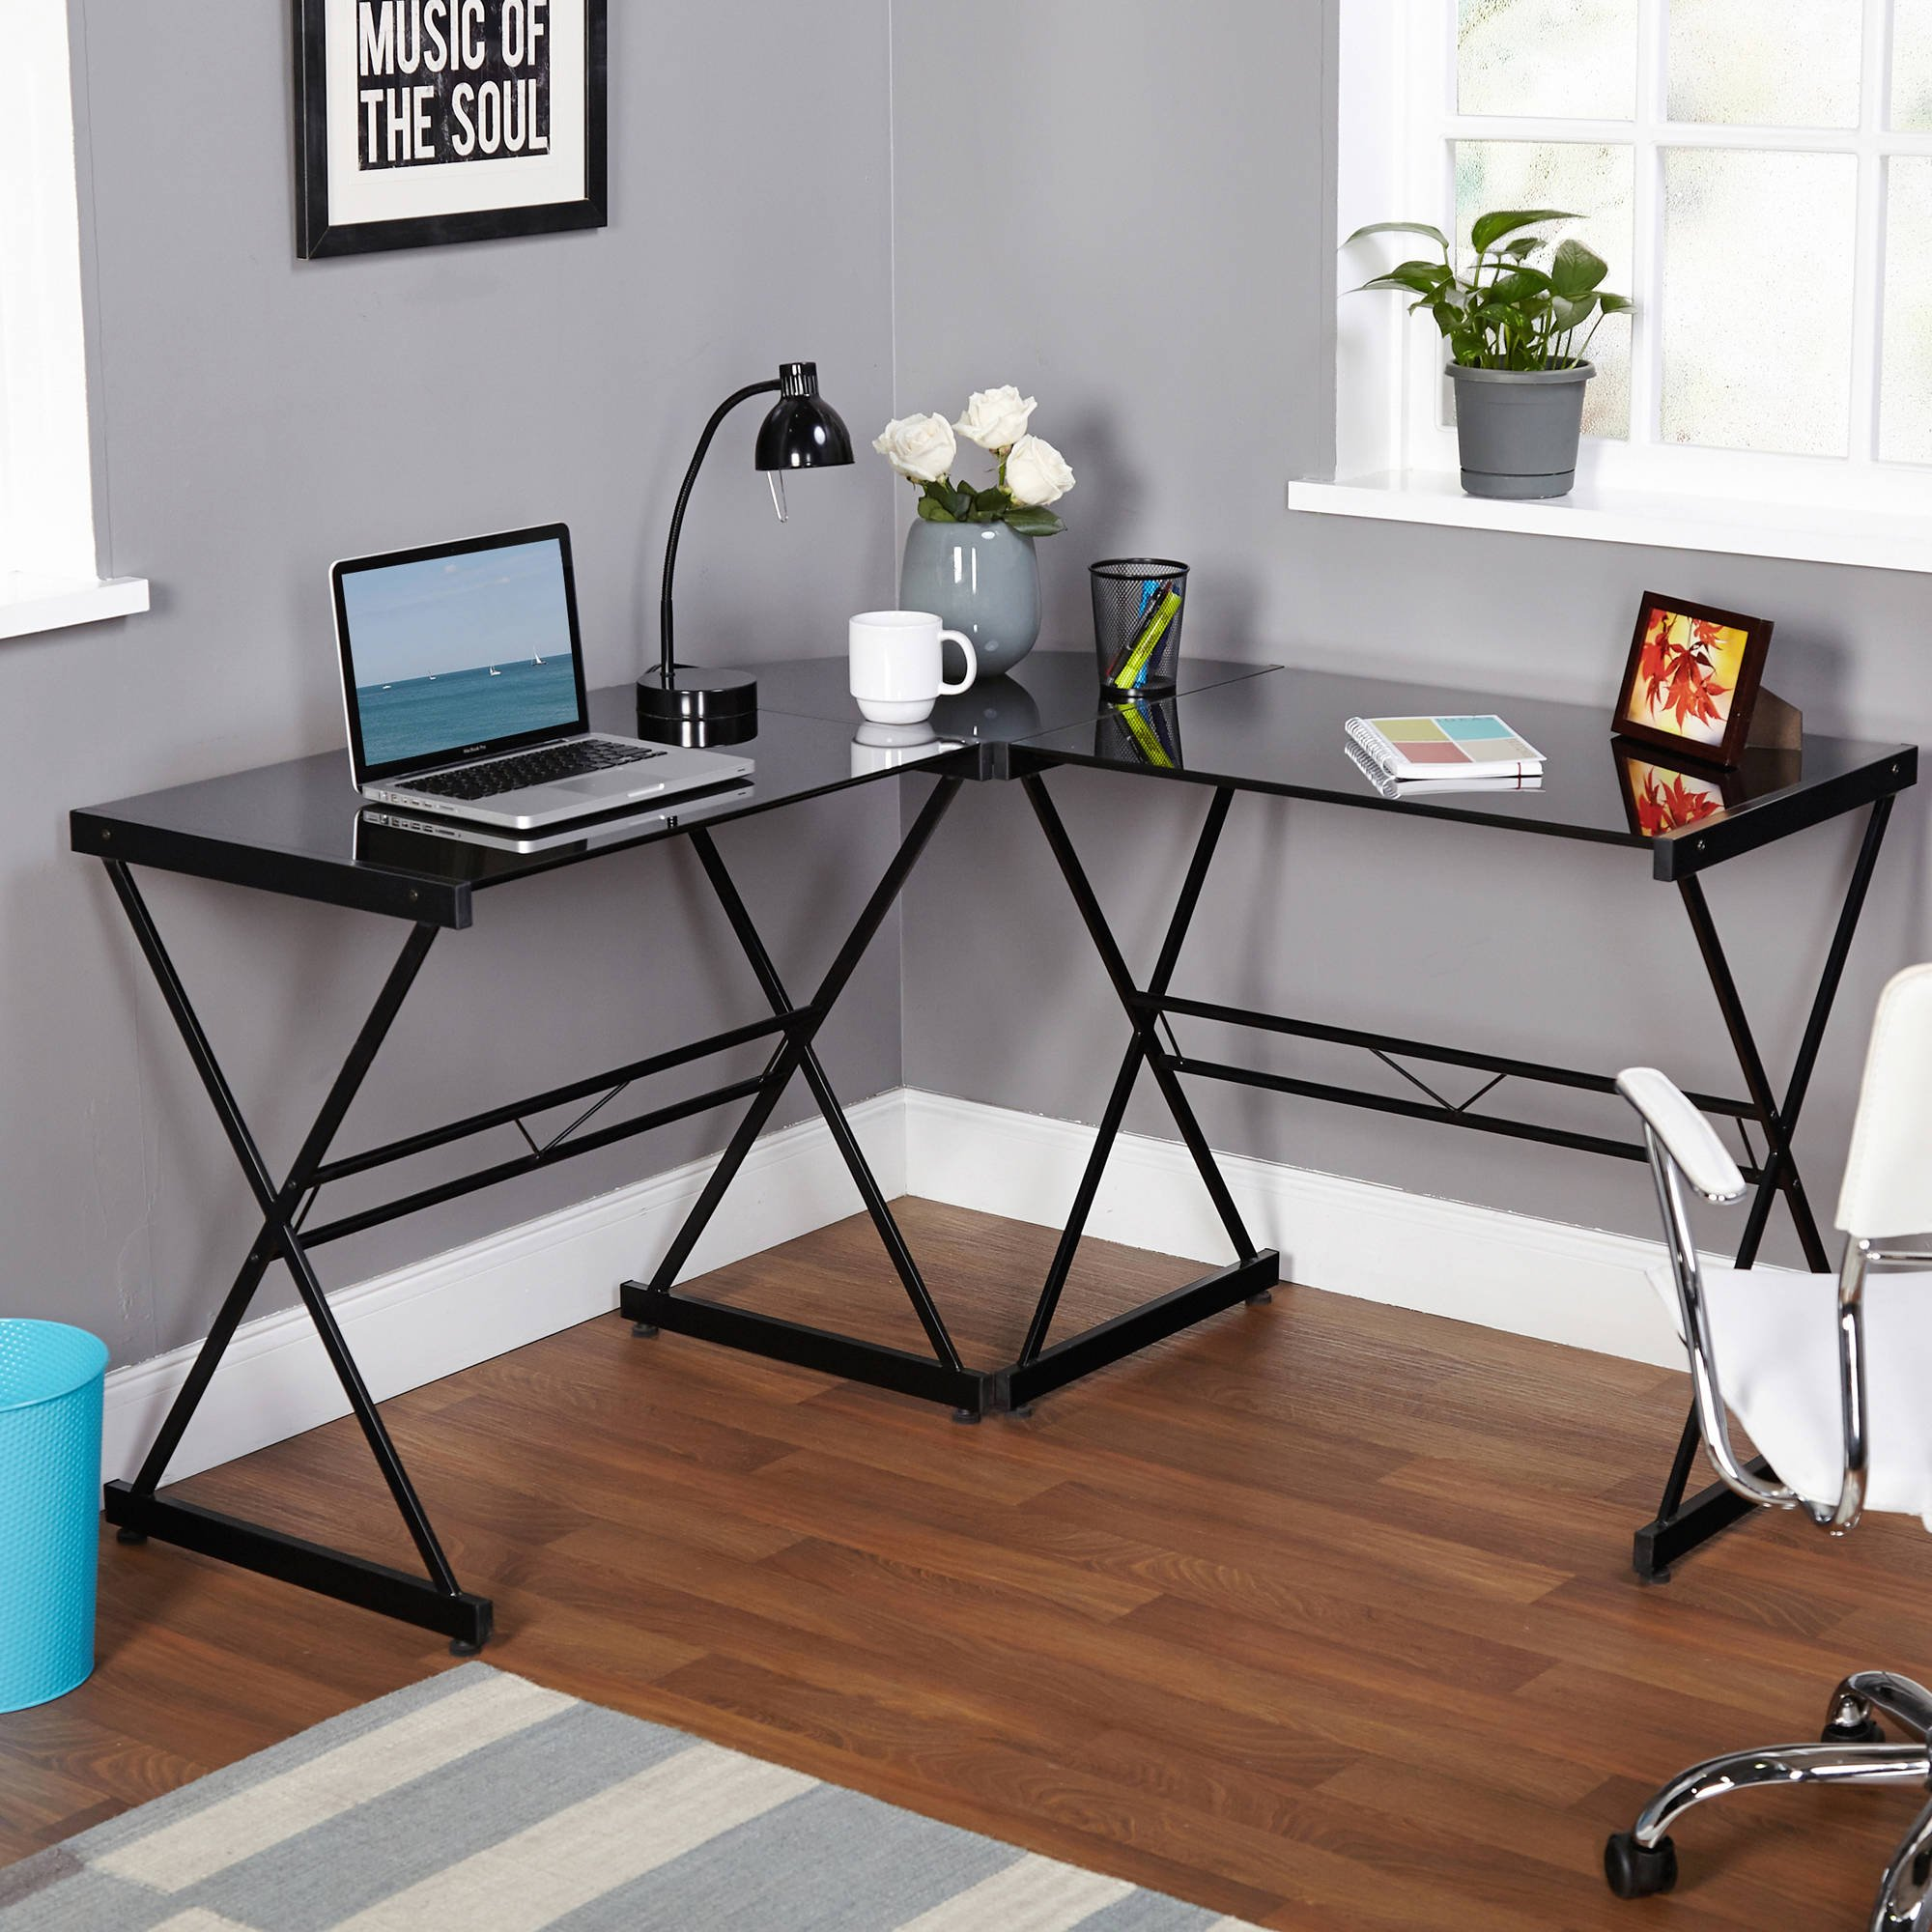 Classy Atrium Metal and Glass L-shaped Computer Desk, Durable Tempered Glass and Sturdy Metal Frame, Elegant Addition to Home and Office Furniture, Multiple Colors (L: 51.00 x W: 51.00 x H: 29.00 in)